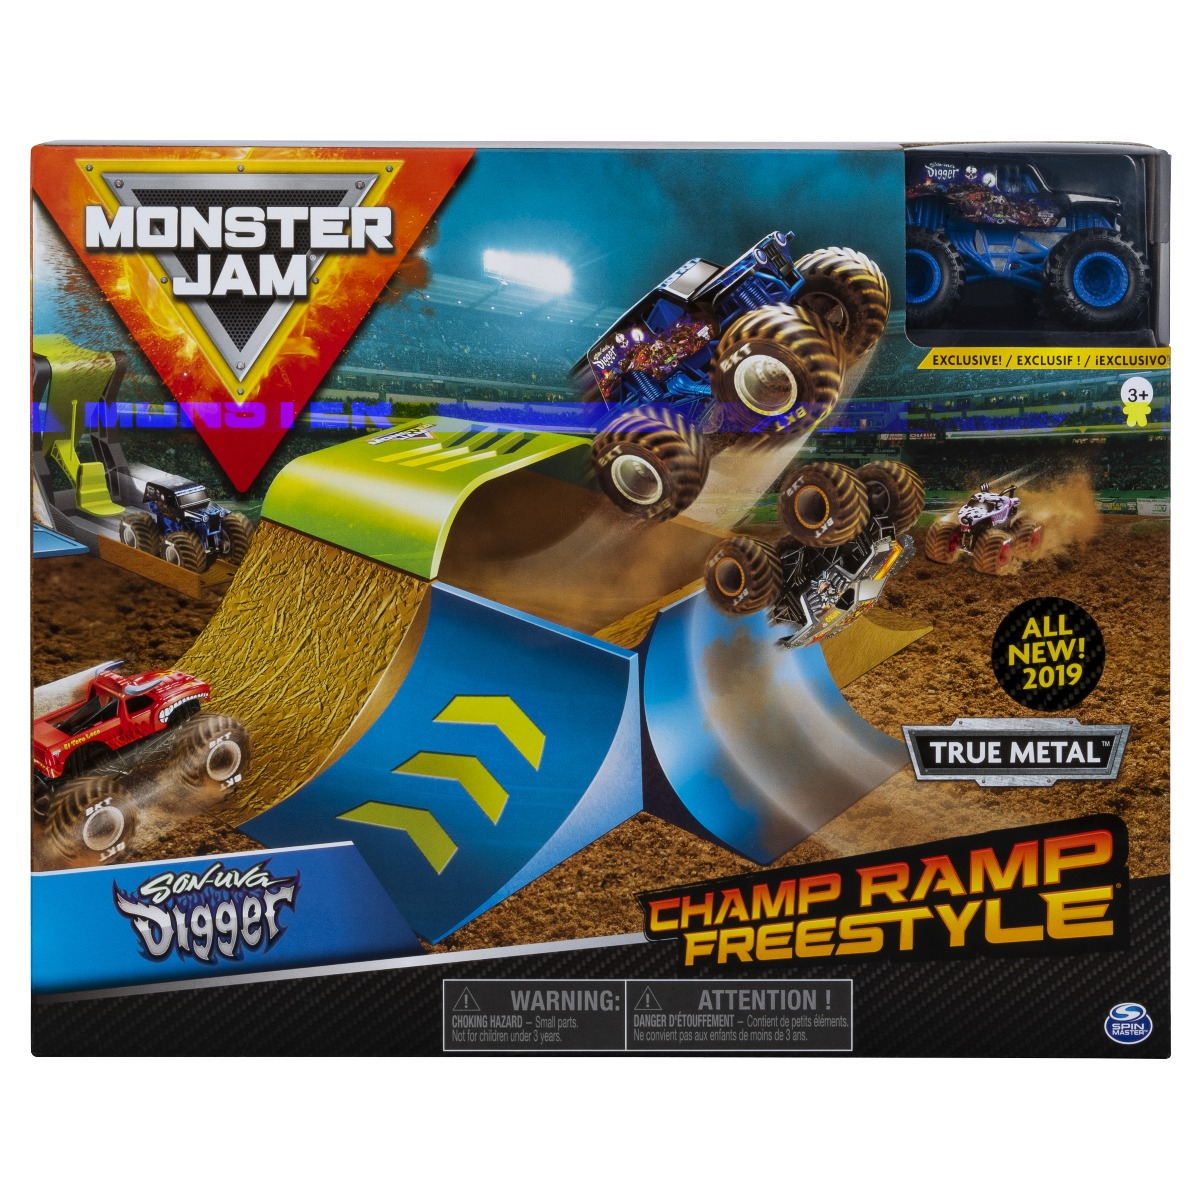 Set masinuta Monster Jam Champ Ramp Freestyle Son-uva Digger